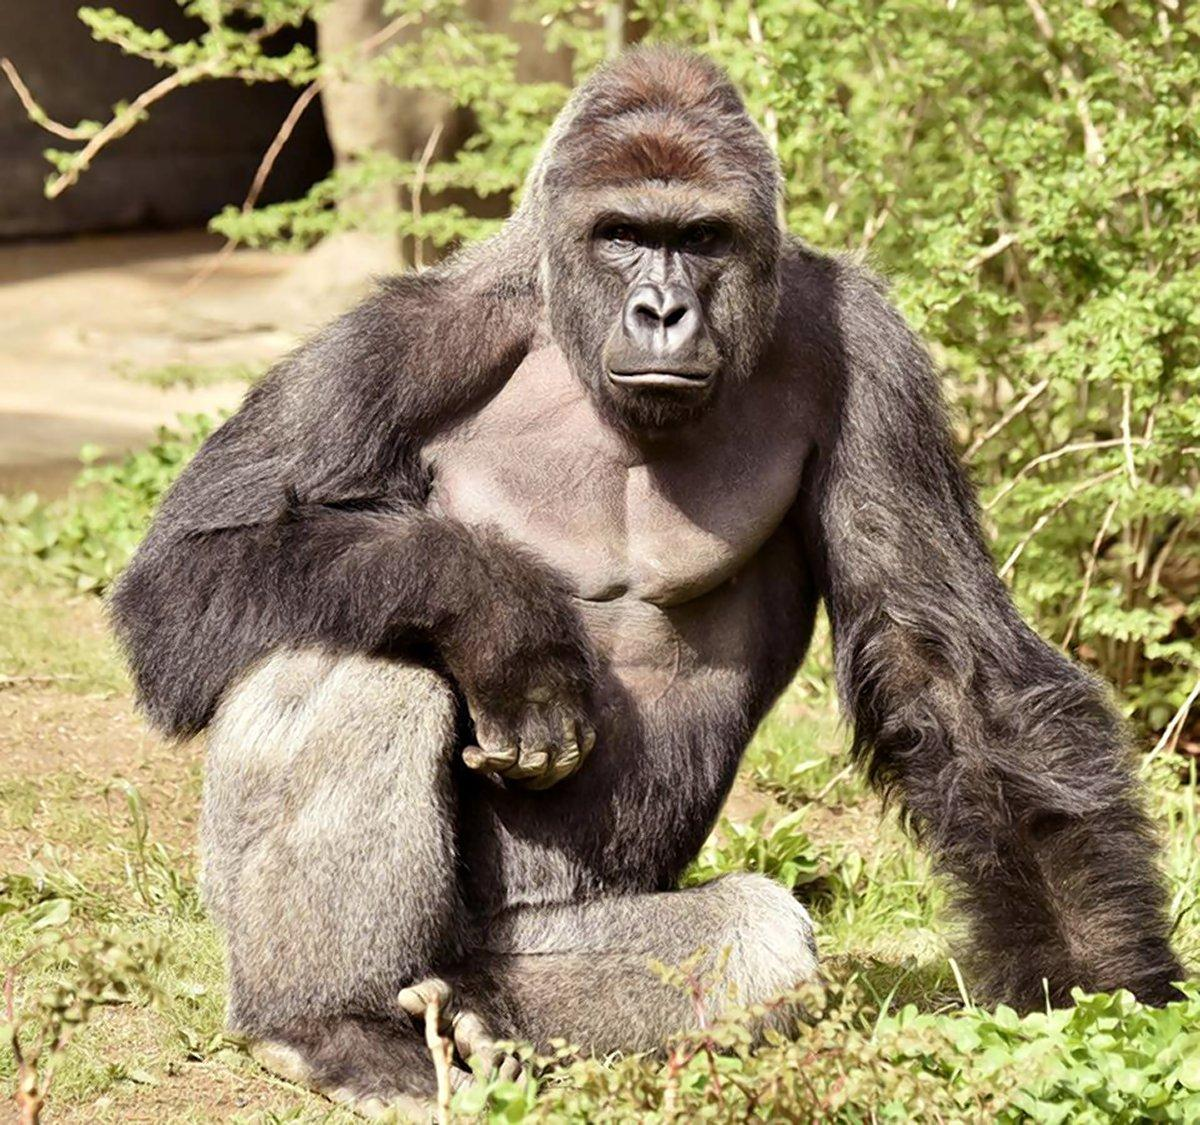 Green Party candidate Jill Stein speaks out for Harambe